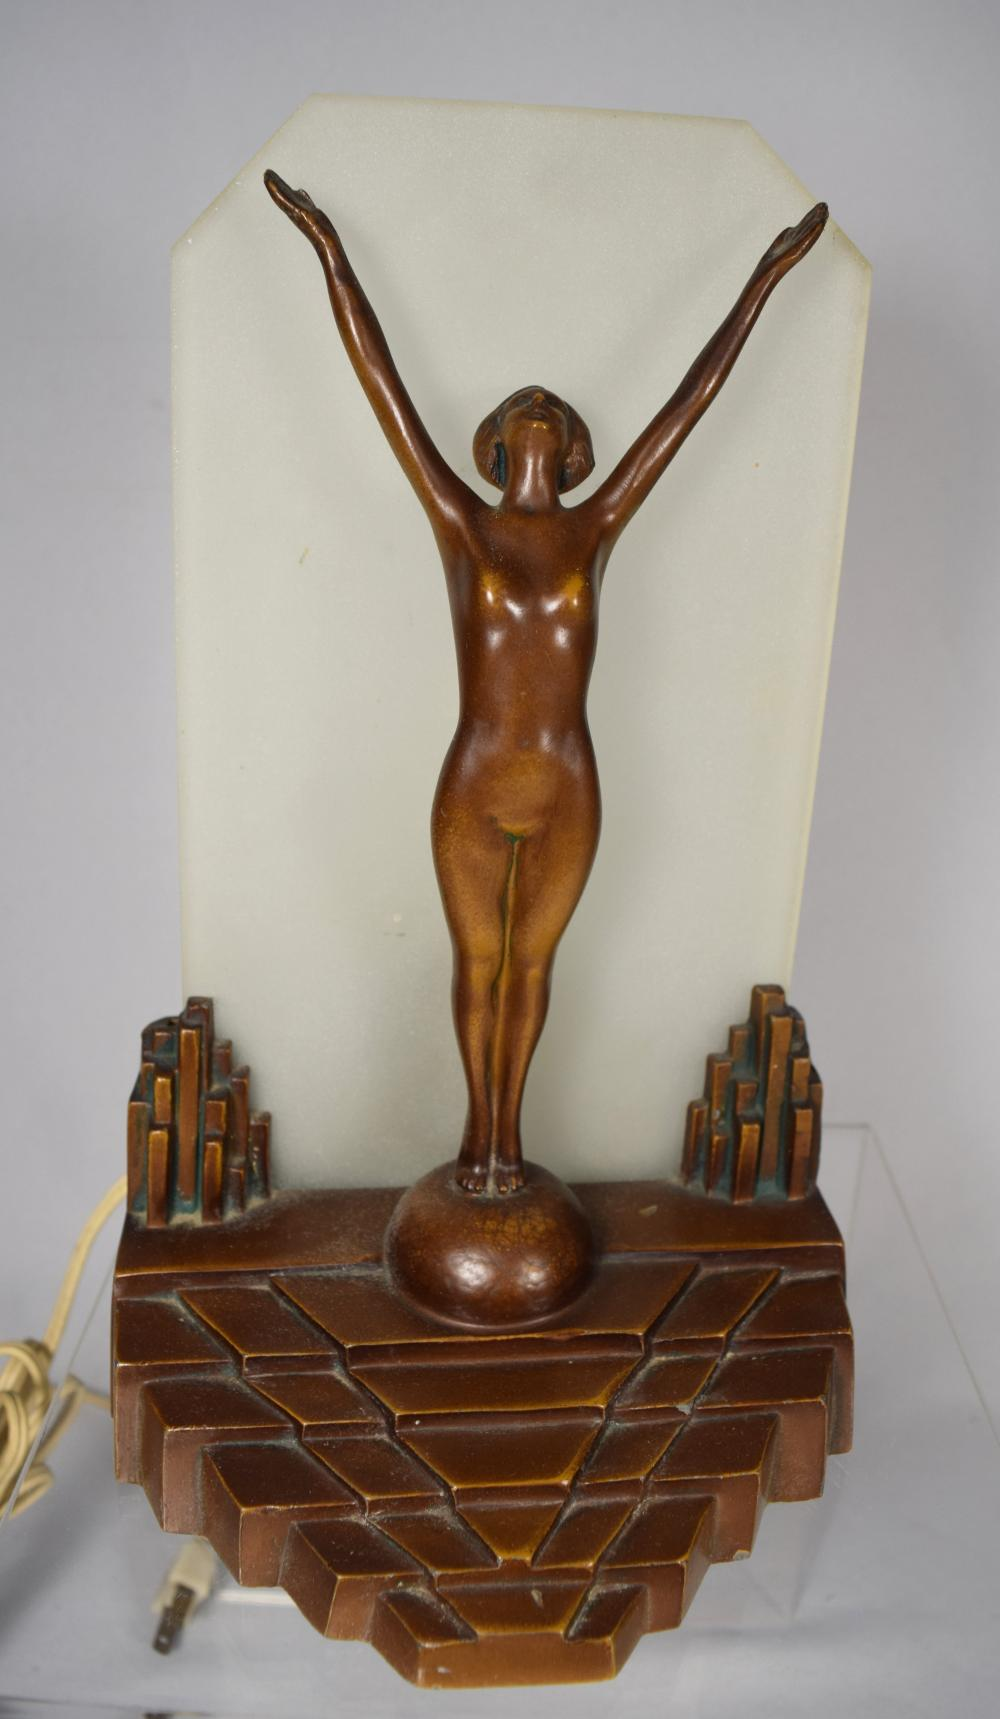 ART DECO LAMP: